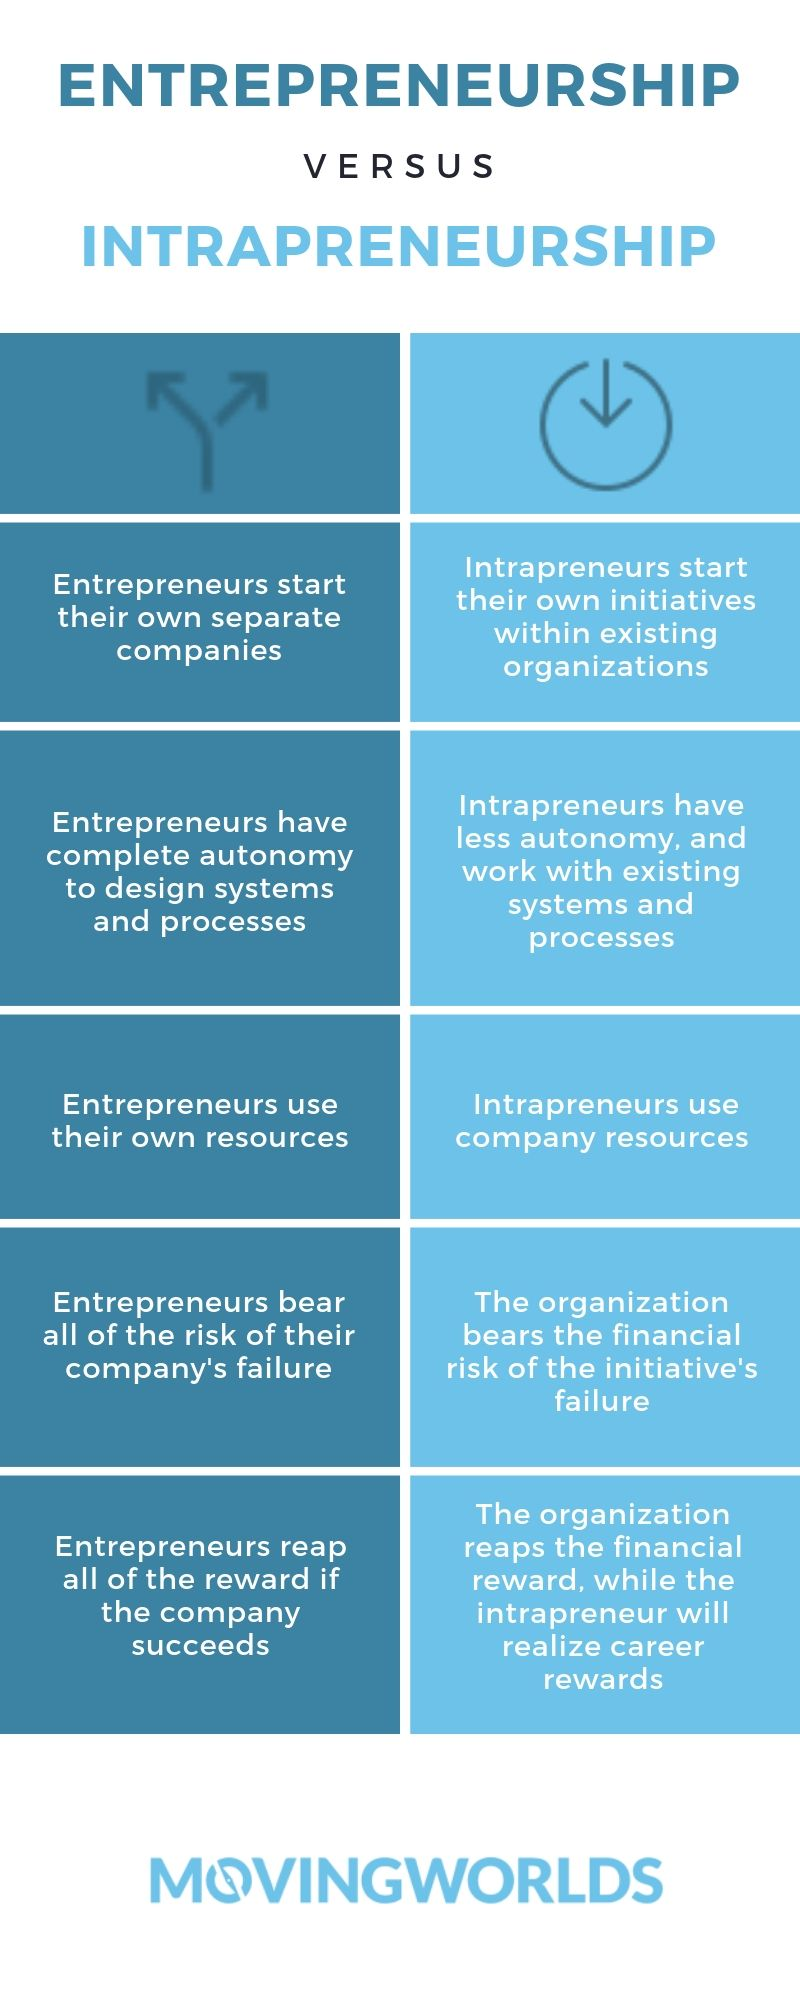 Entrepreneurship vs. Intrapreneurship